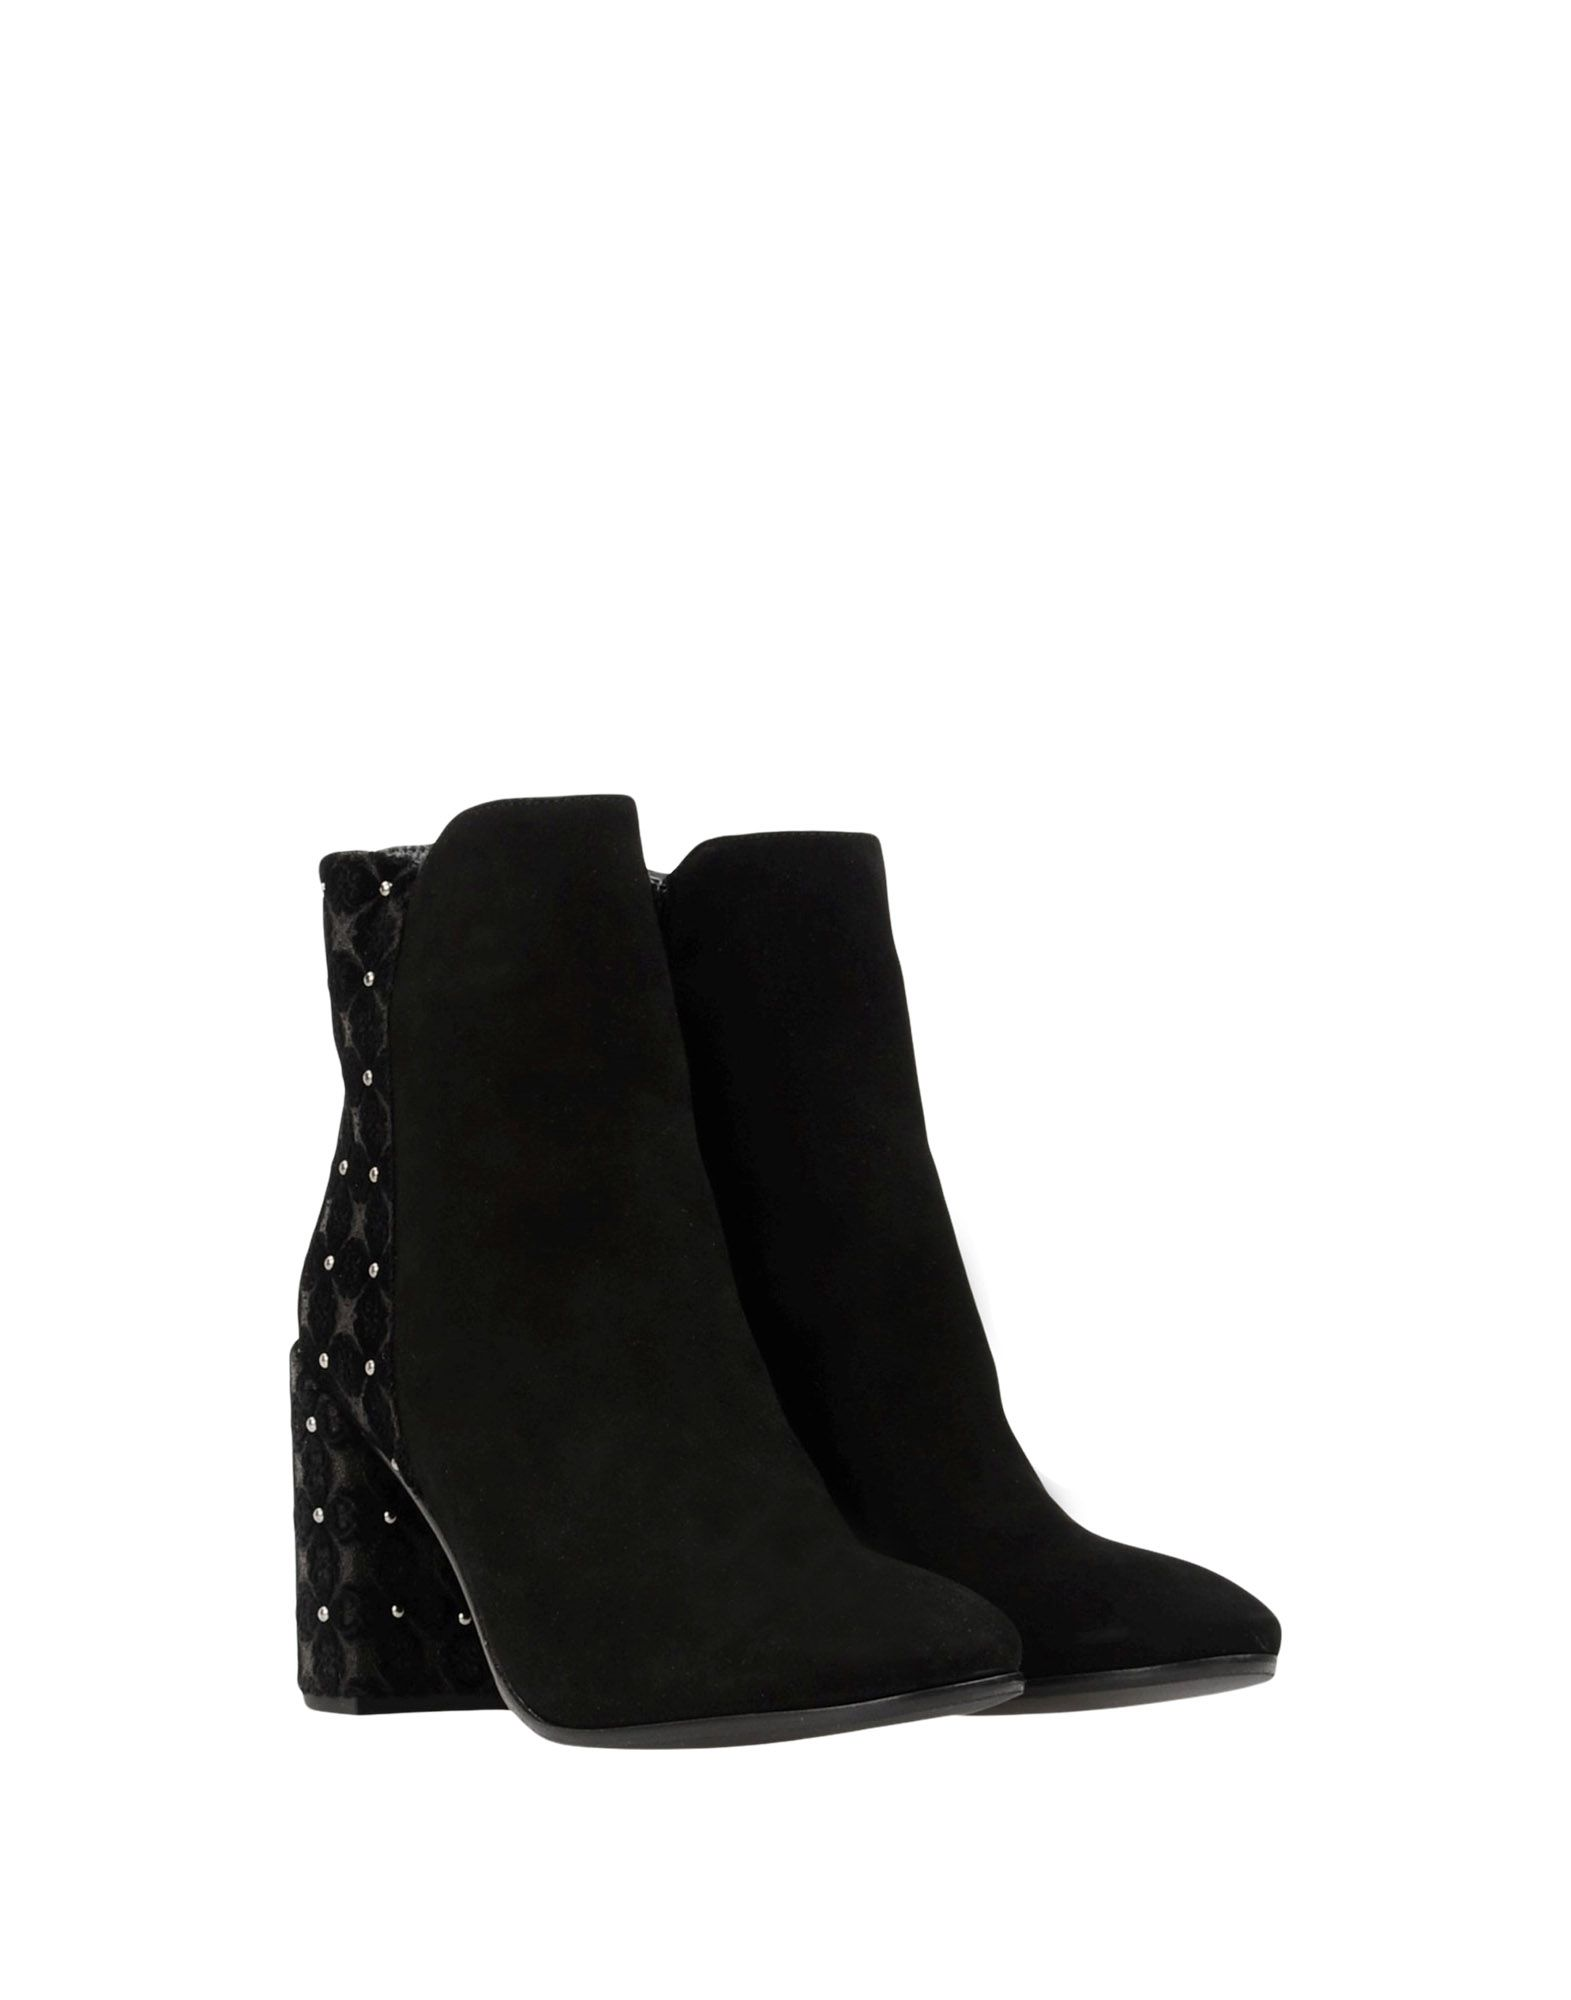 Bottine 8 Femme - Bottines 8 sur